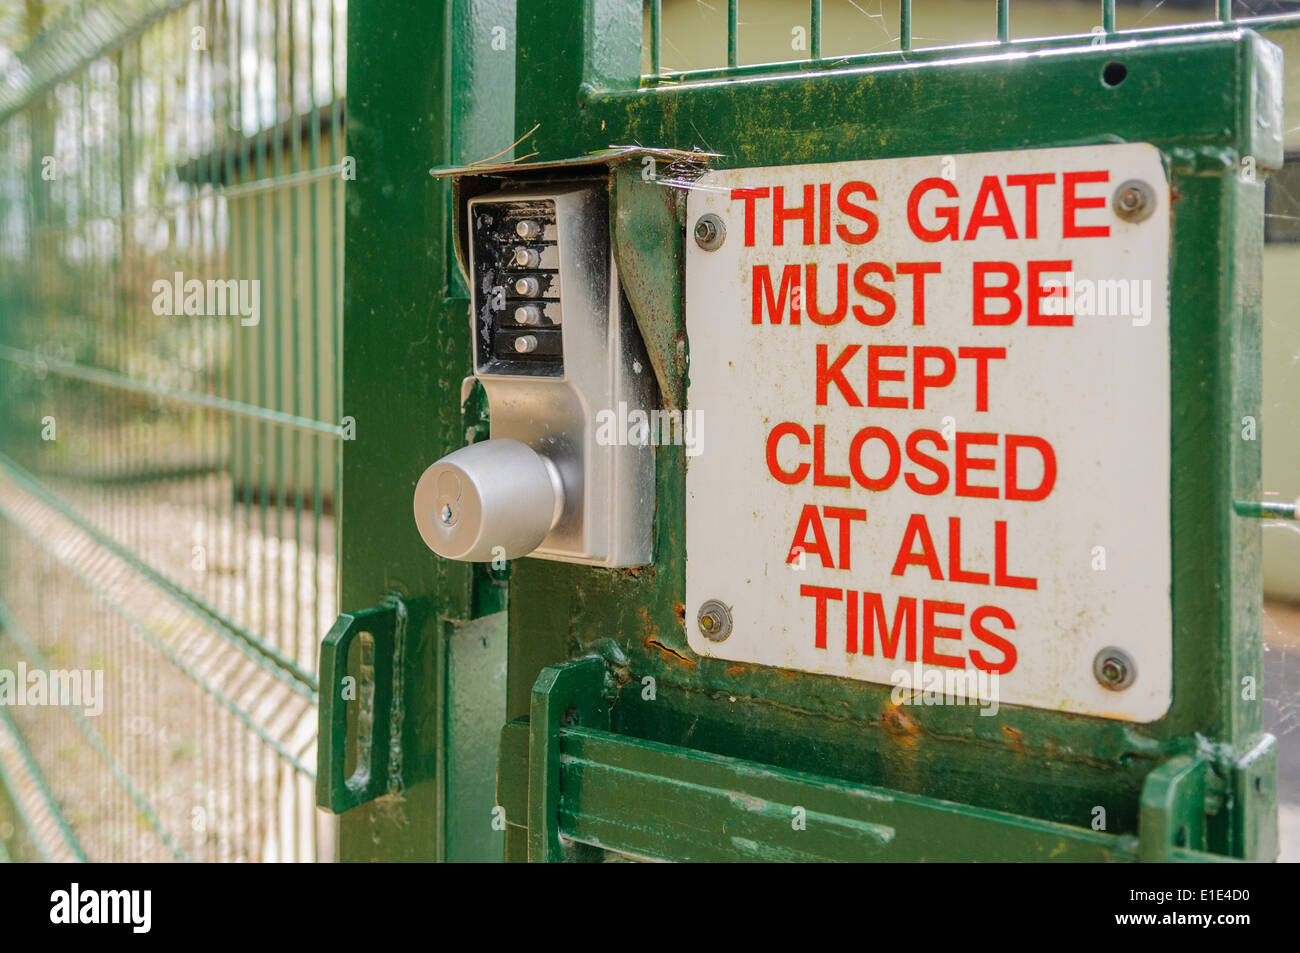 Sign on a security gate advising that it must be kept closed. - Stock Image